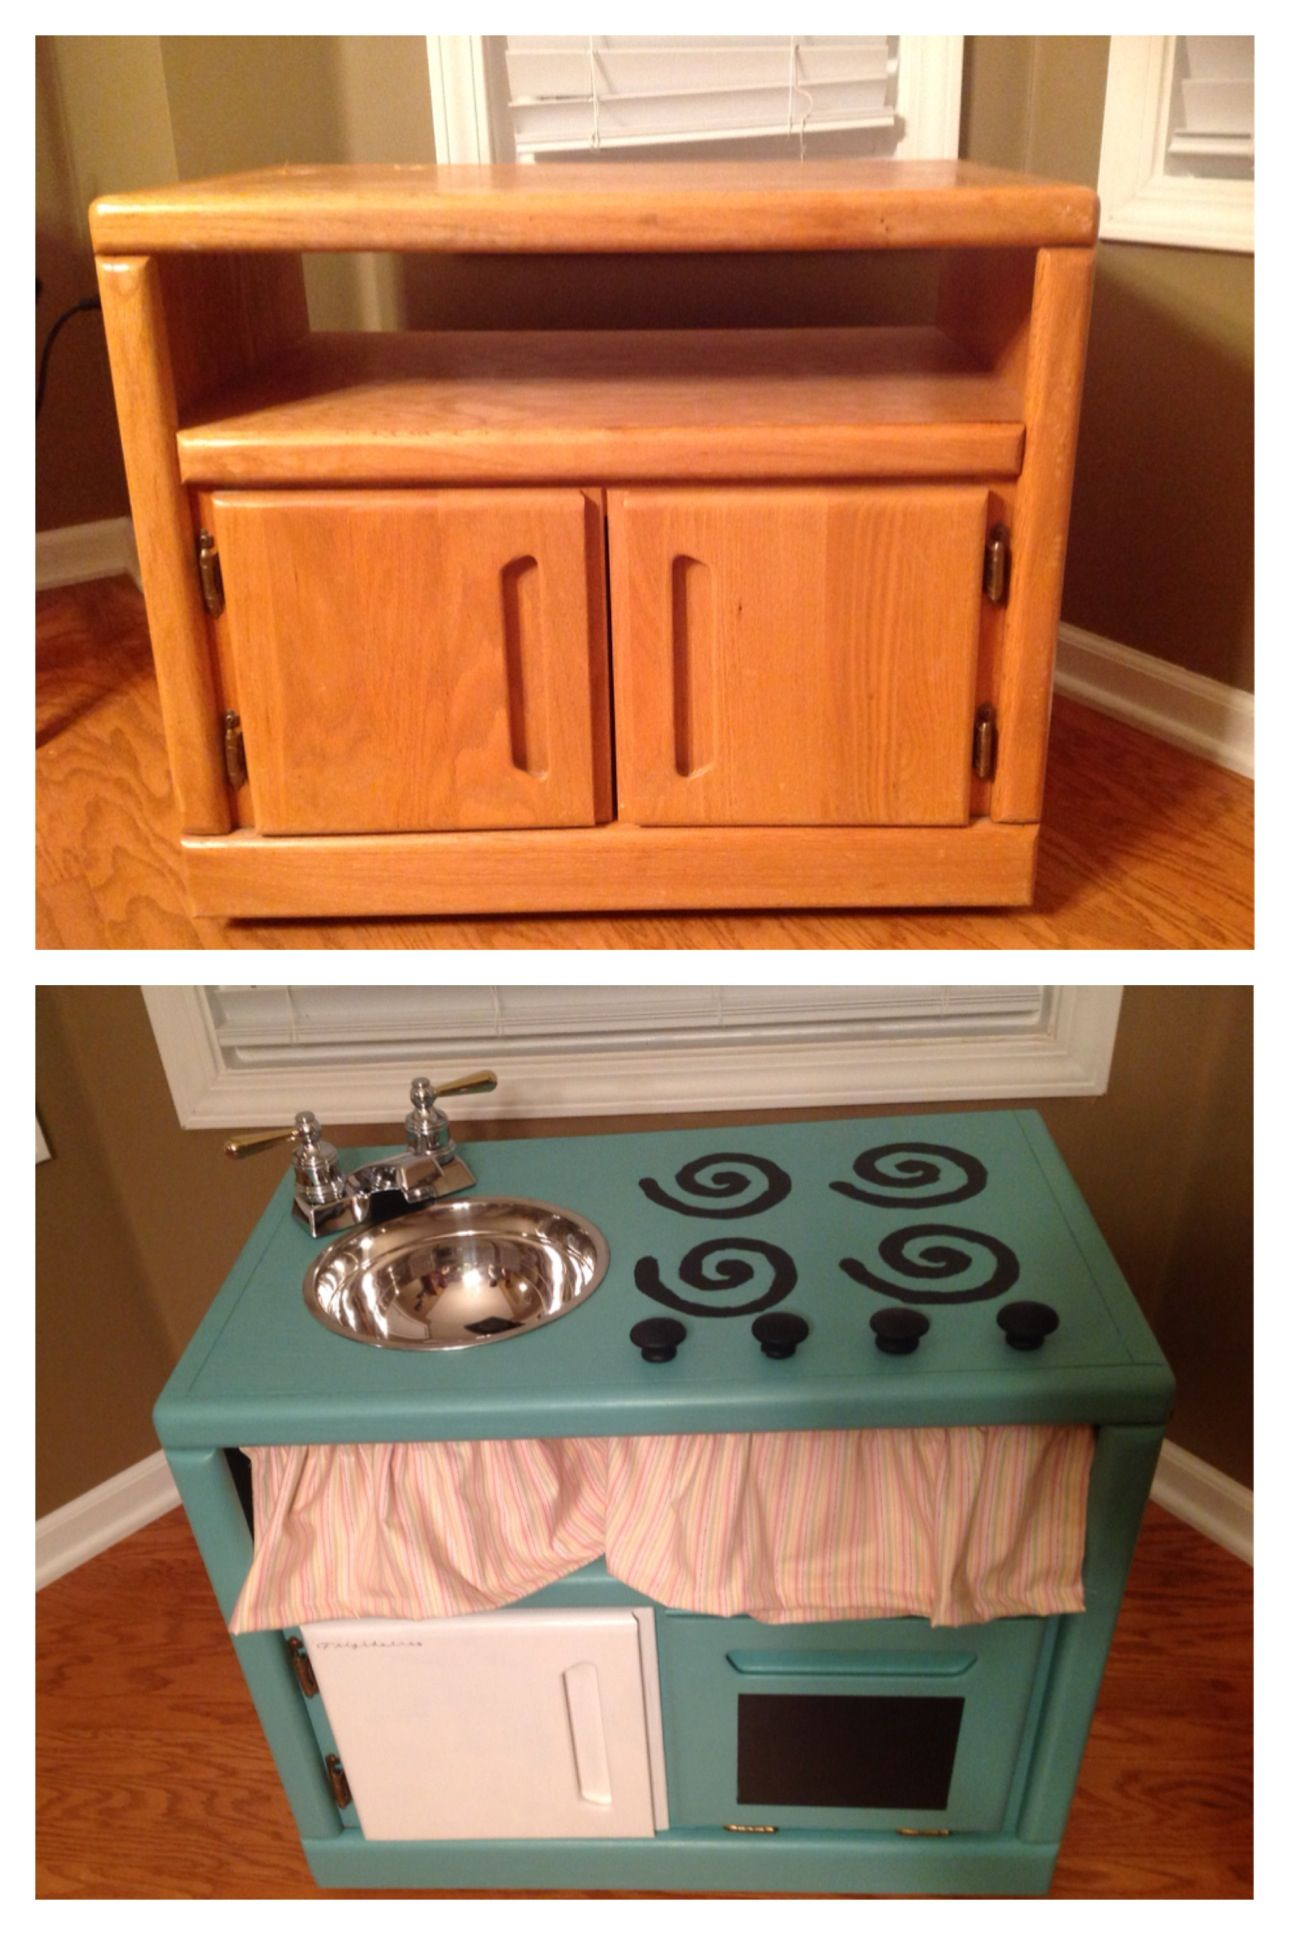 Cucina Per Bambini In Cartone Diy Play Kitchen Made From An Old Nightstand My Kiddos Cucina